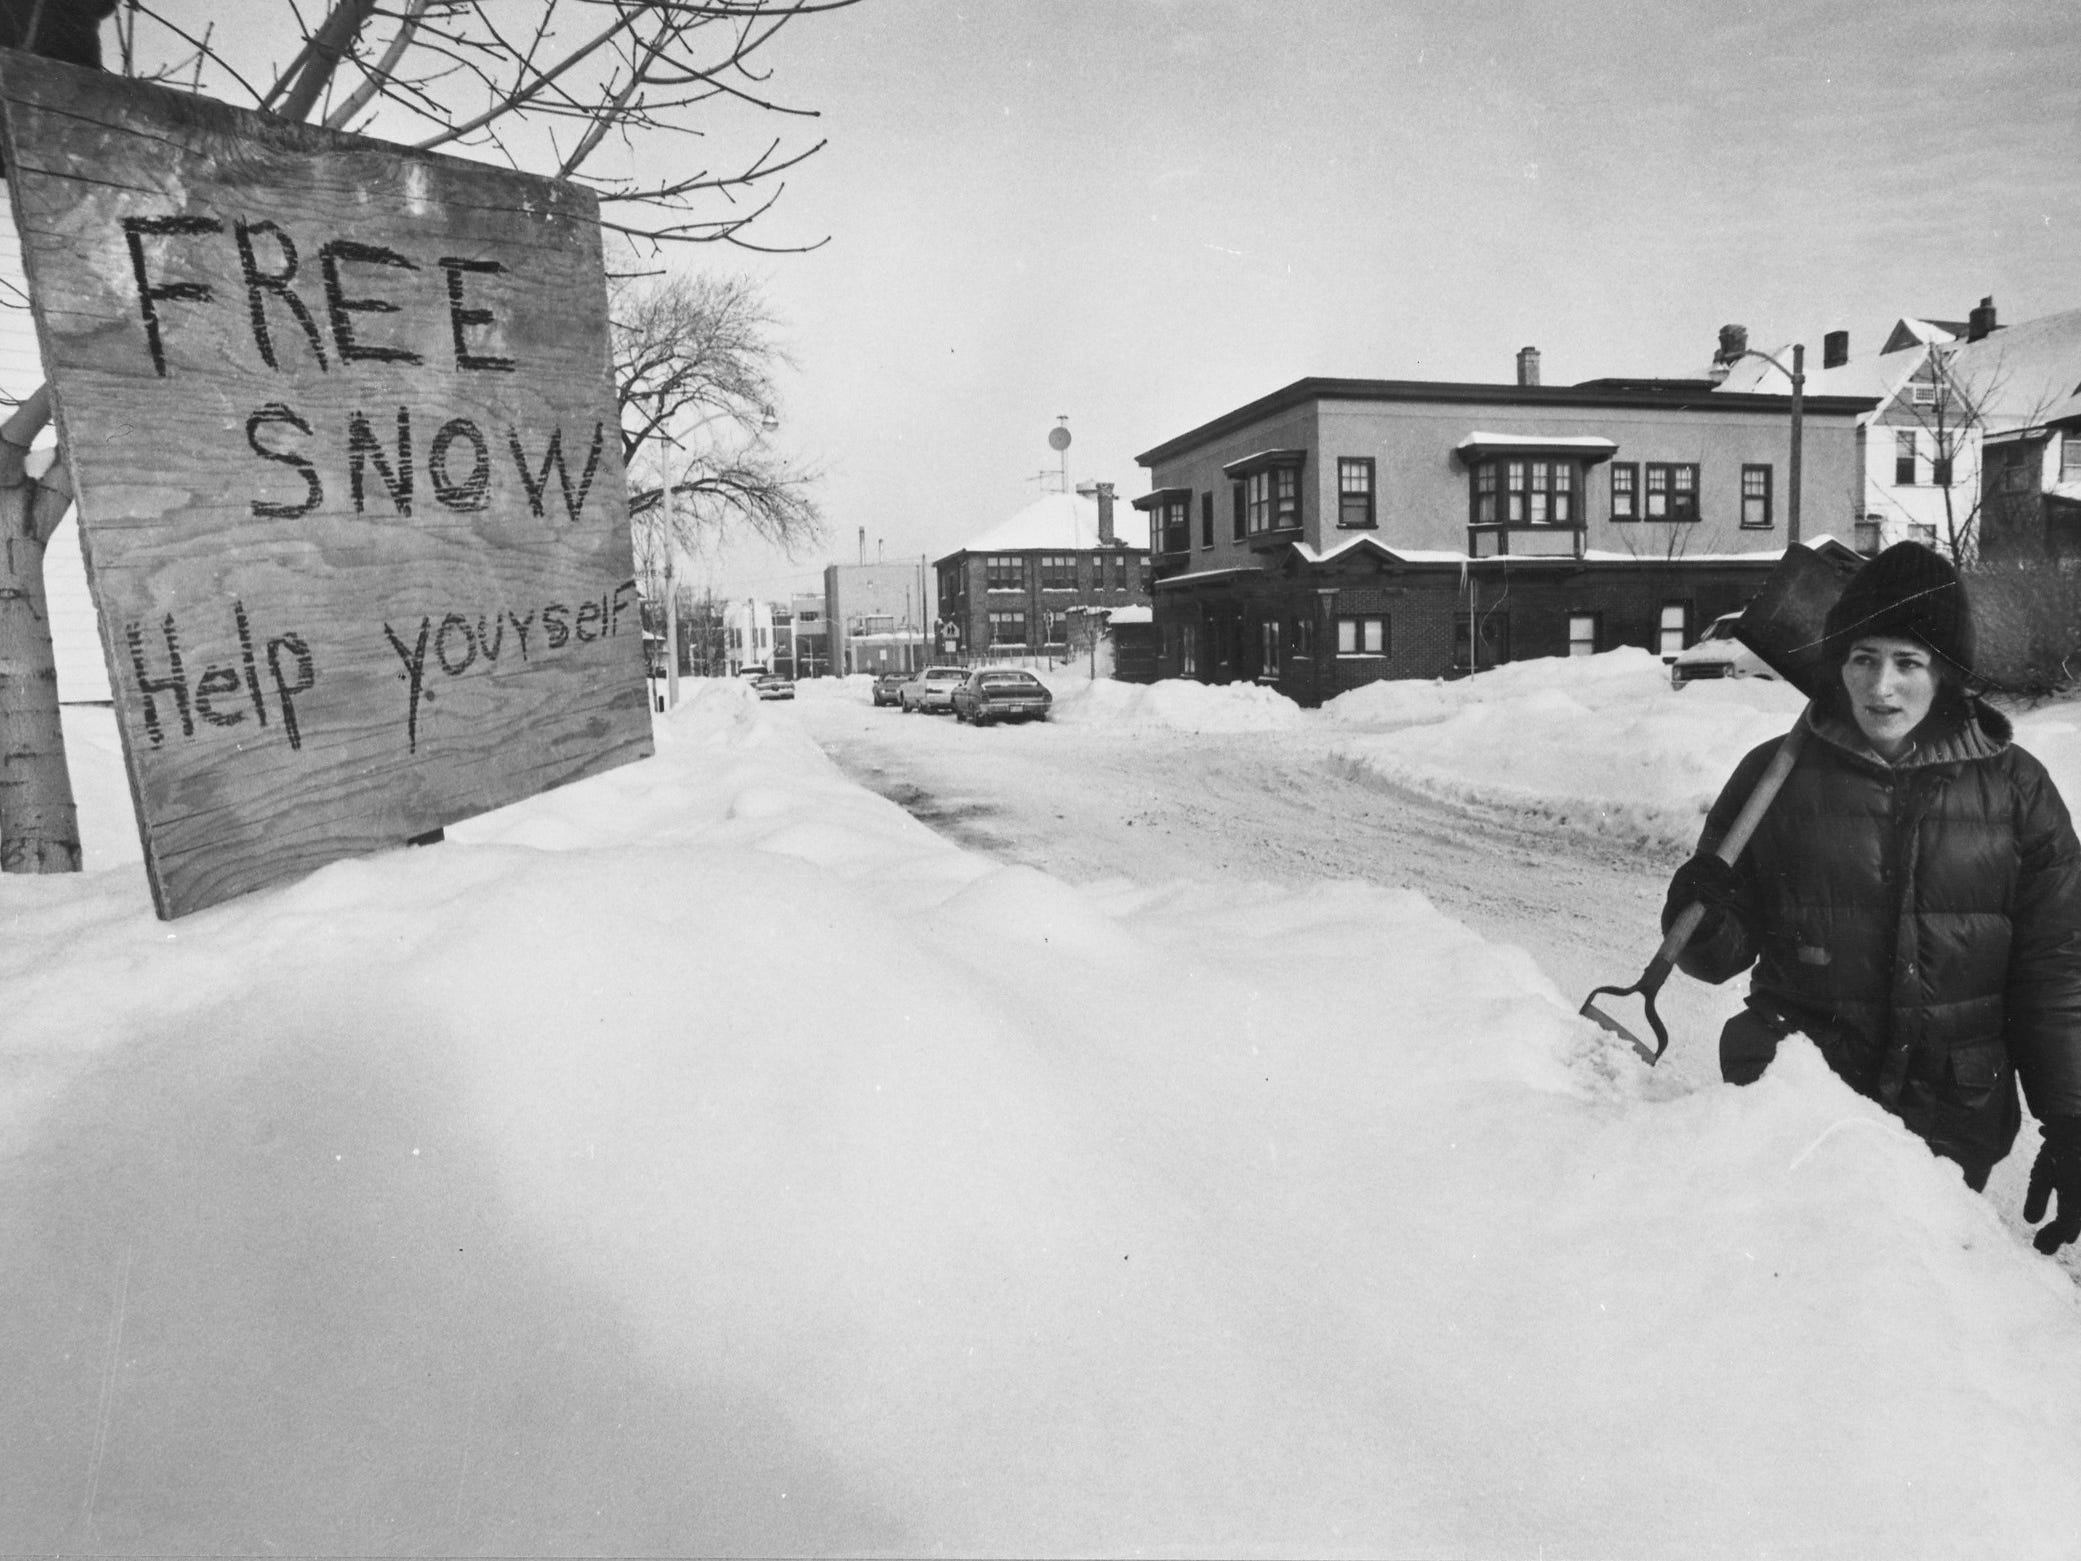 "Marianne San Felippo looks as if she's hoping there'll be some takers as she walks by a ""Free Snow - Help Yourself"" sign in the 1900 block of North Bartlett Avenue on Jan. 16, 1979. Milwaukee was in the midst of digging out of the second major snowstorm in two weeks, with another on the way. This photo was published in the Jan. 17, 1979, Milwaukee Journal."